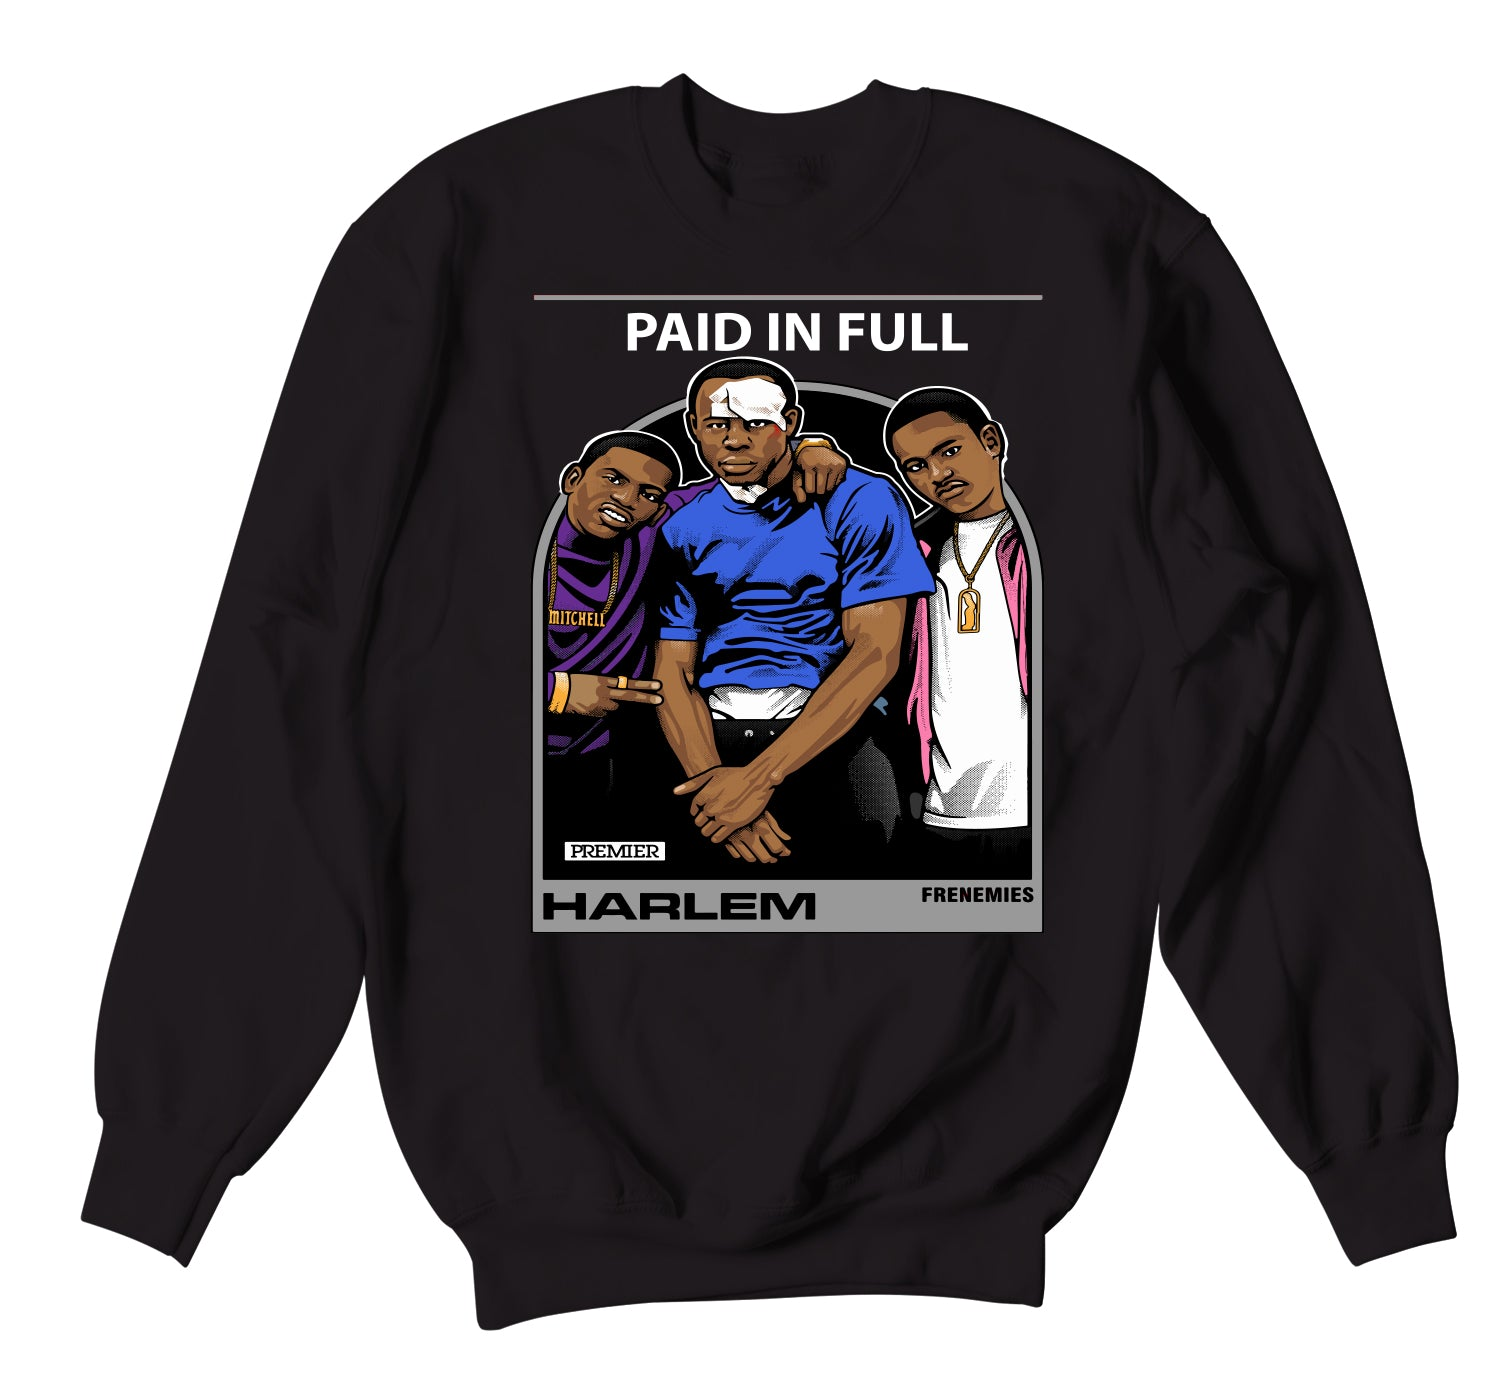 crew necks fro men designed to match the foamposite gradient sole collection